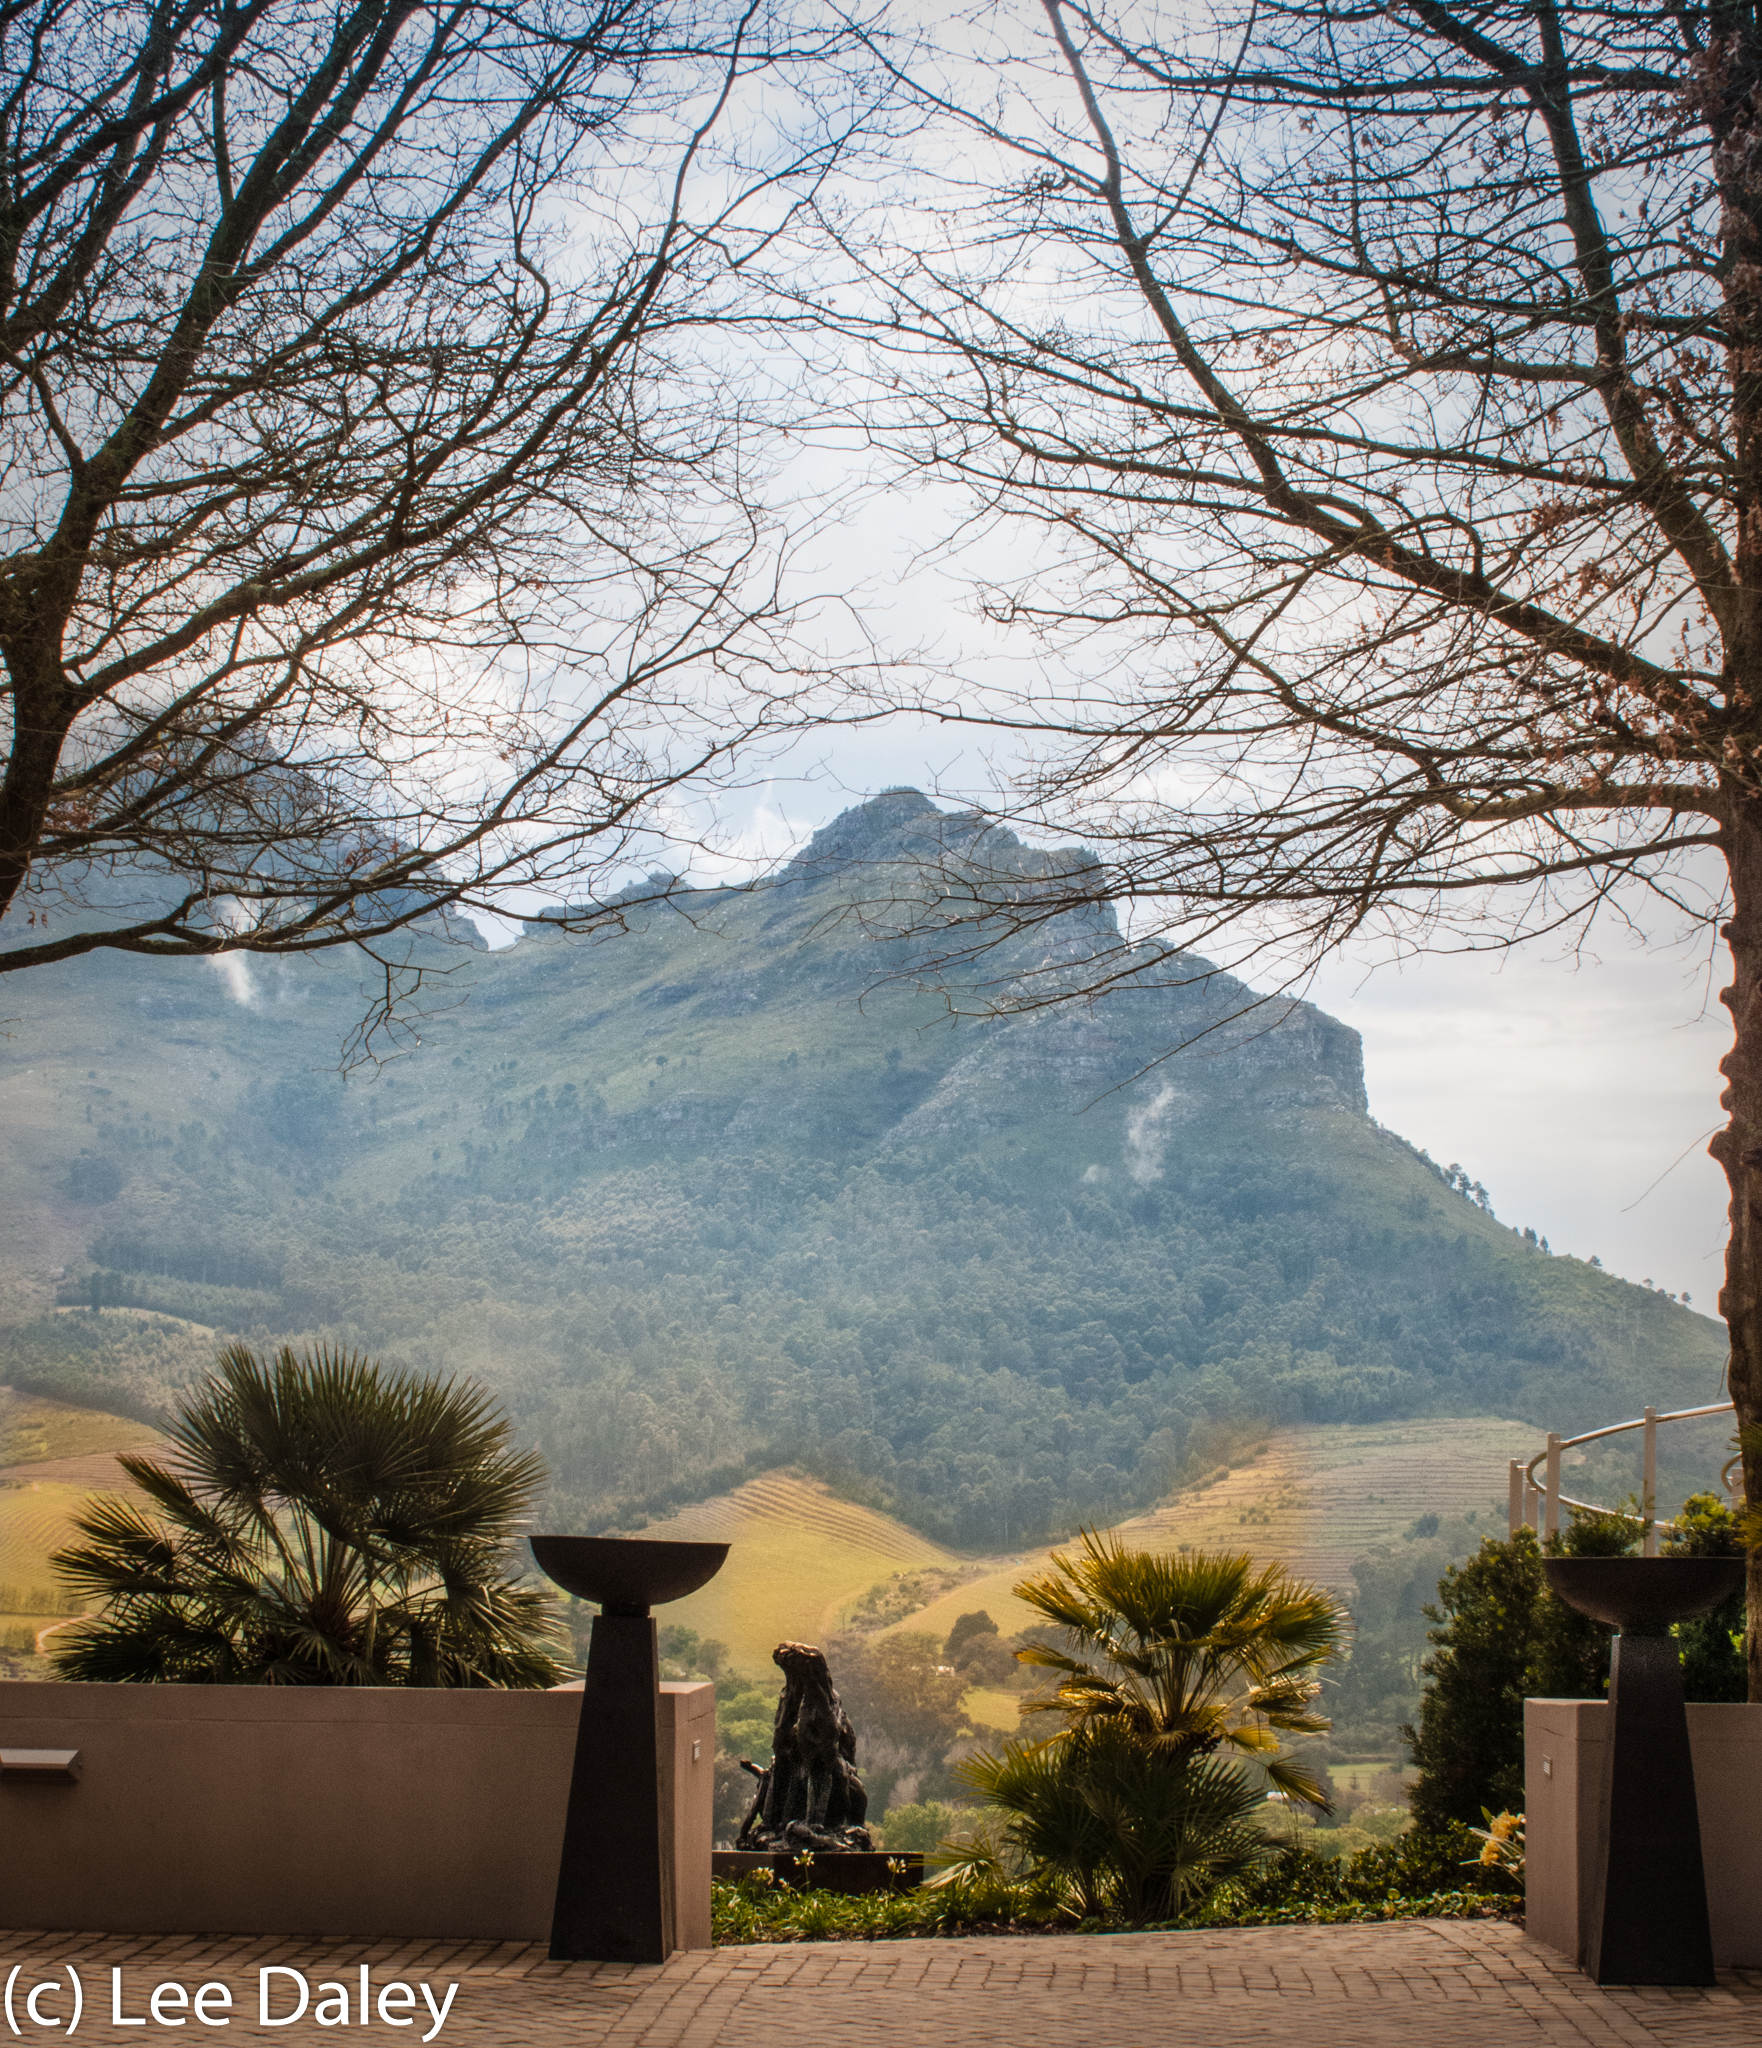 Cape Winelands, Exploring South Africa's Cape Winelands, Art in the Vineyards